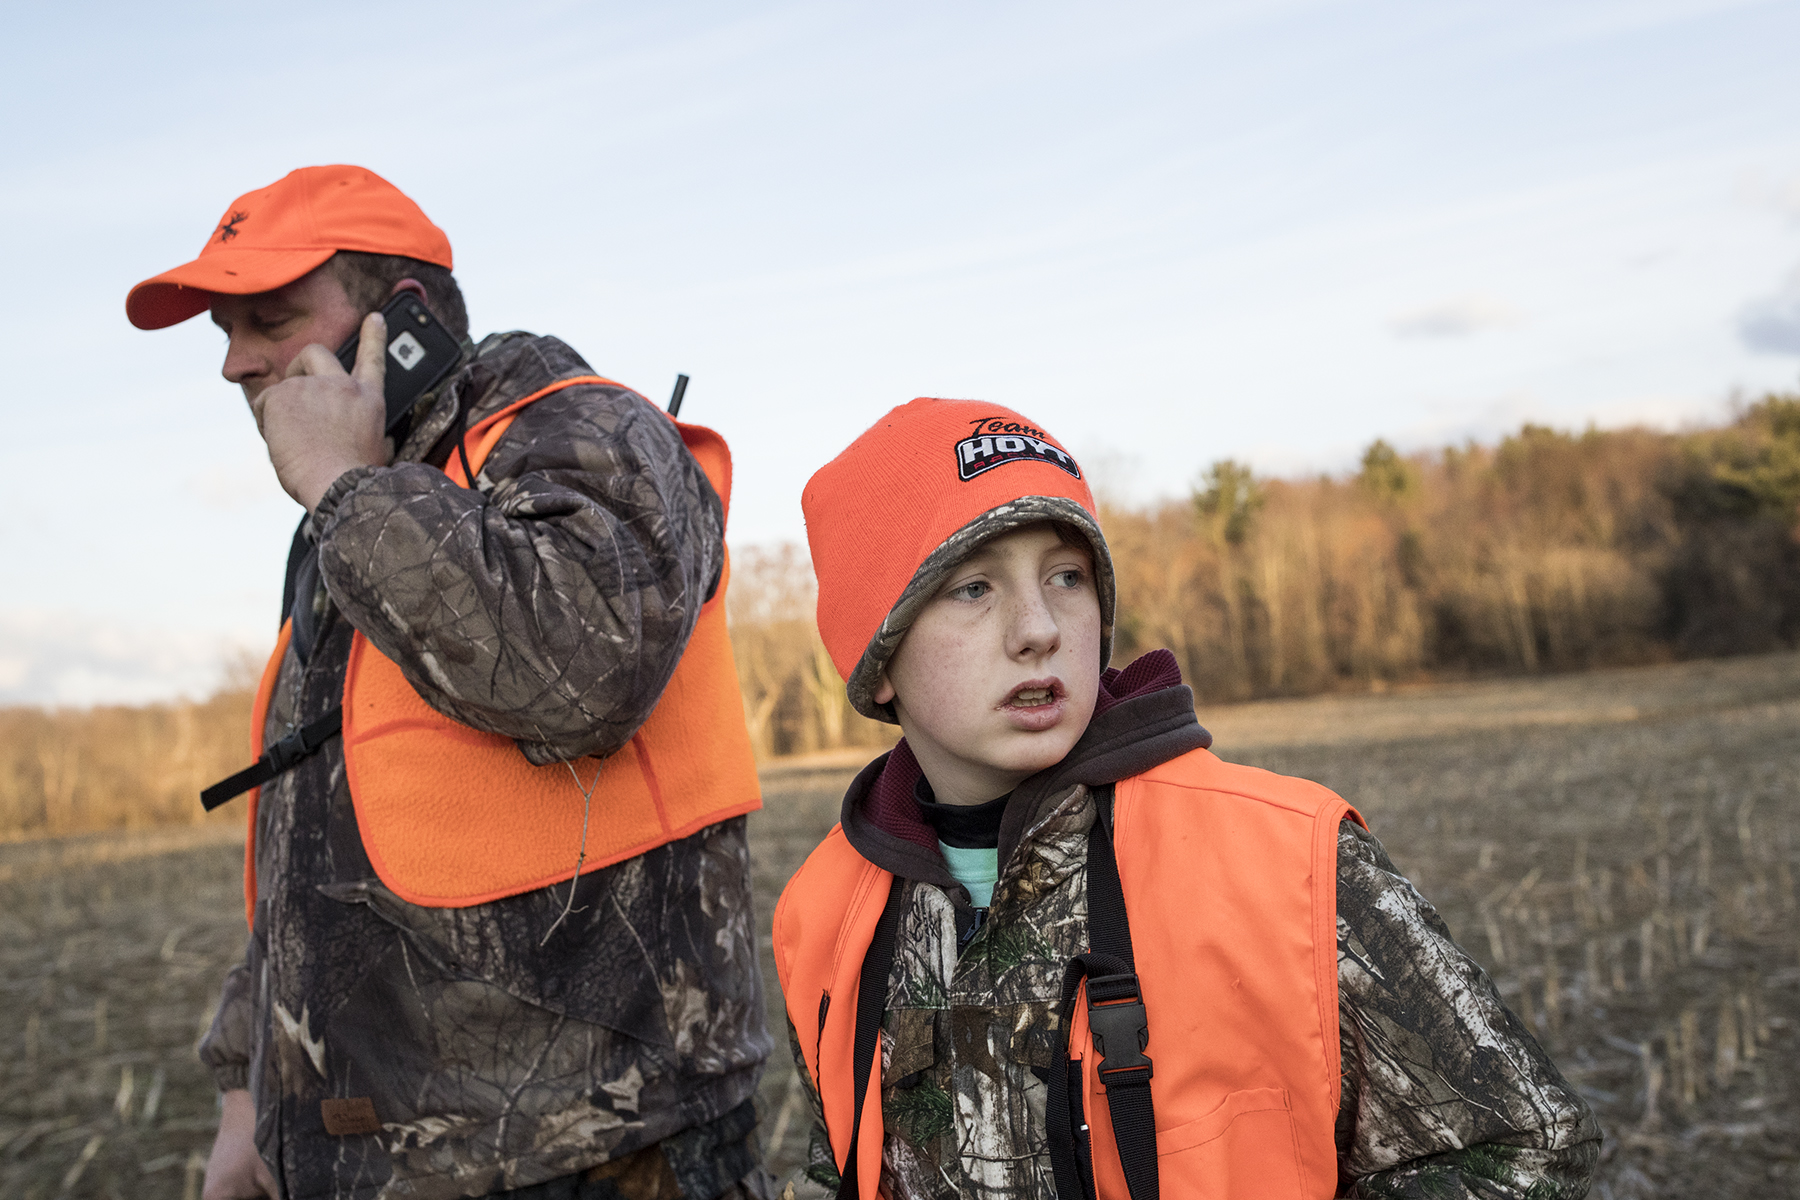 Ethan Cole, age 11, and his father Toby Cole walk through a field on their family's dairy farm after searching for a deer Ethan shot while hunting on opening day of deer rifle hunting season in Troy, Penn., on Monday, November 27, 2017. Ethan is enrolled in the Mentored Youth Hunting Permit program and can hunt with a licensed adult mentor, but the gun must be carried by the adult and only one gun may be used between the pair. He went hunting with his father on opening day. The deer he shot was not found, leaving them to believe he just grazed it and it was not mortally wounded.